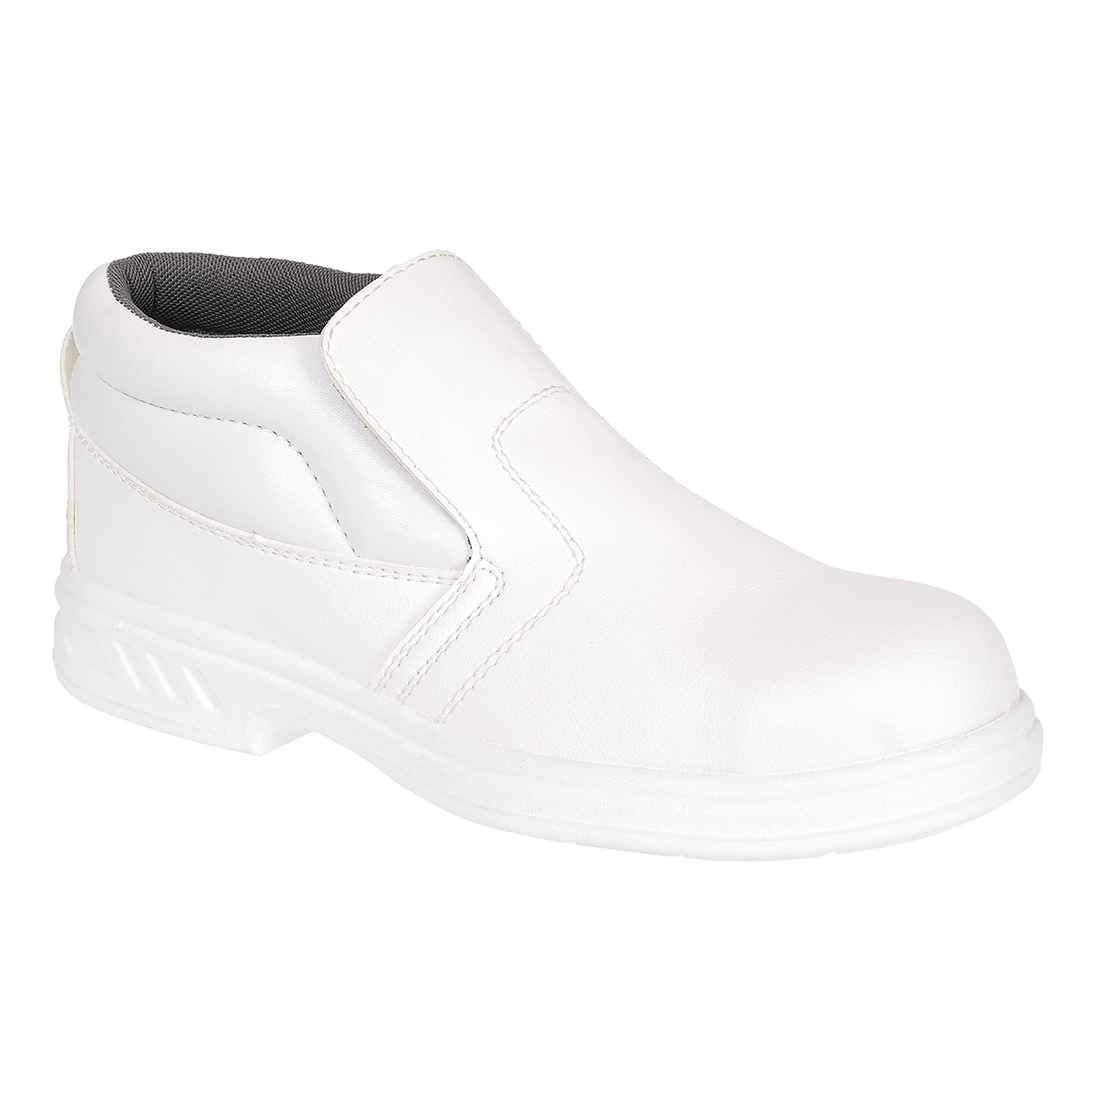 S2 Blanche Chaussure Fw83 Montante Portwest 7SqwFv